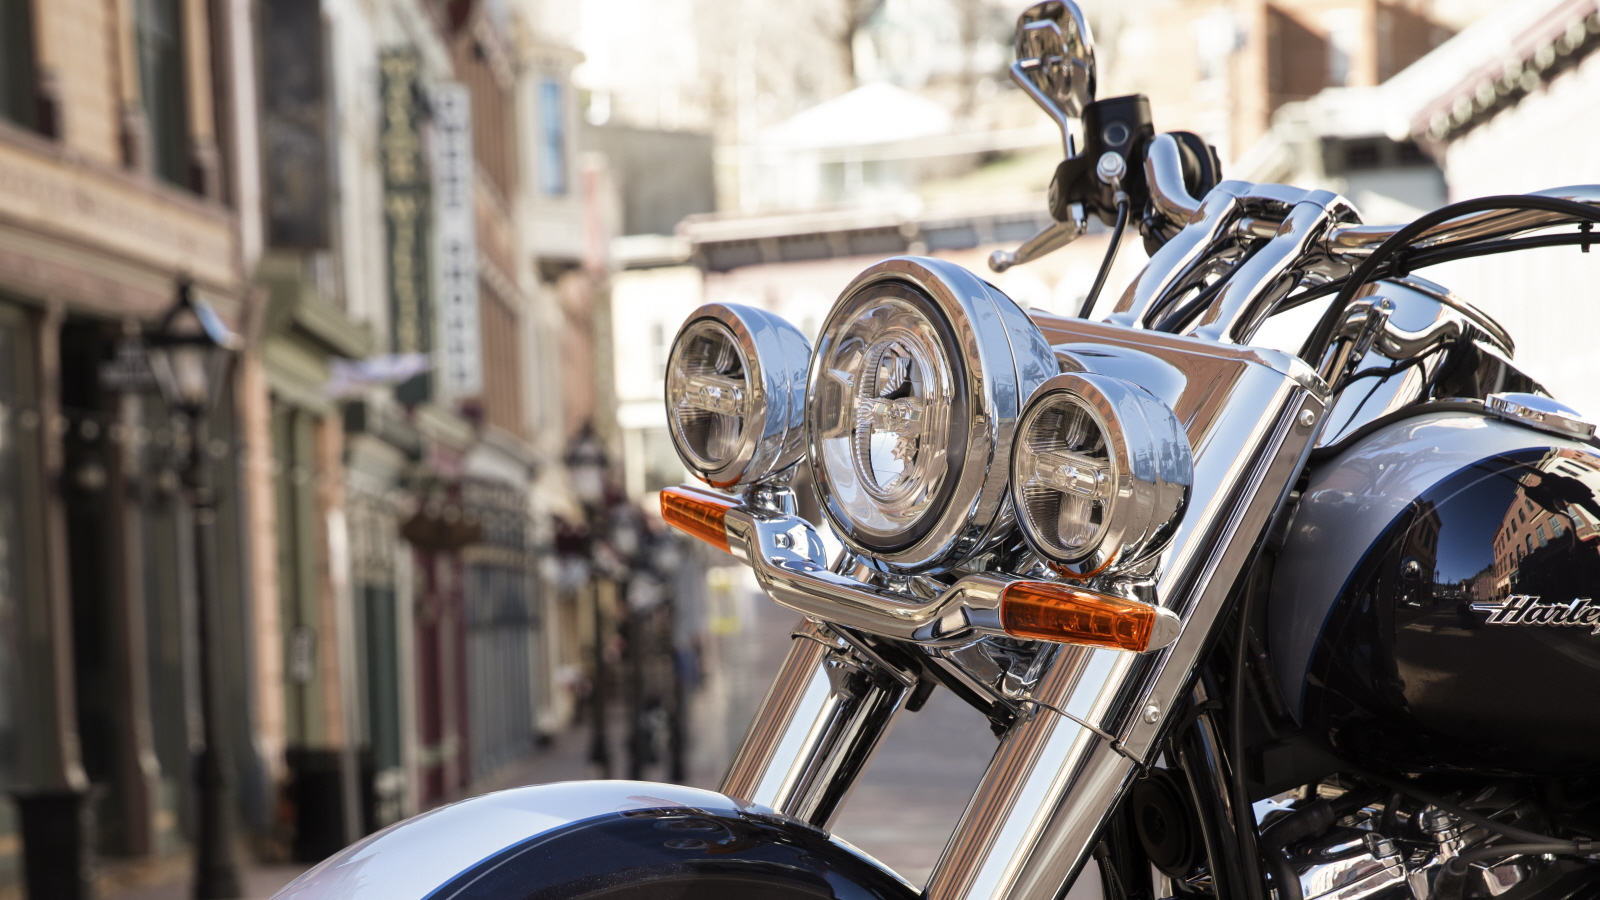 2018 - 2019 Harley-Davidson Softail Deluxe | Top Speed